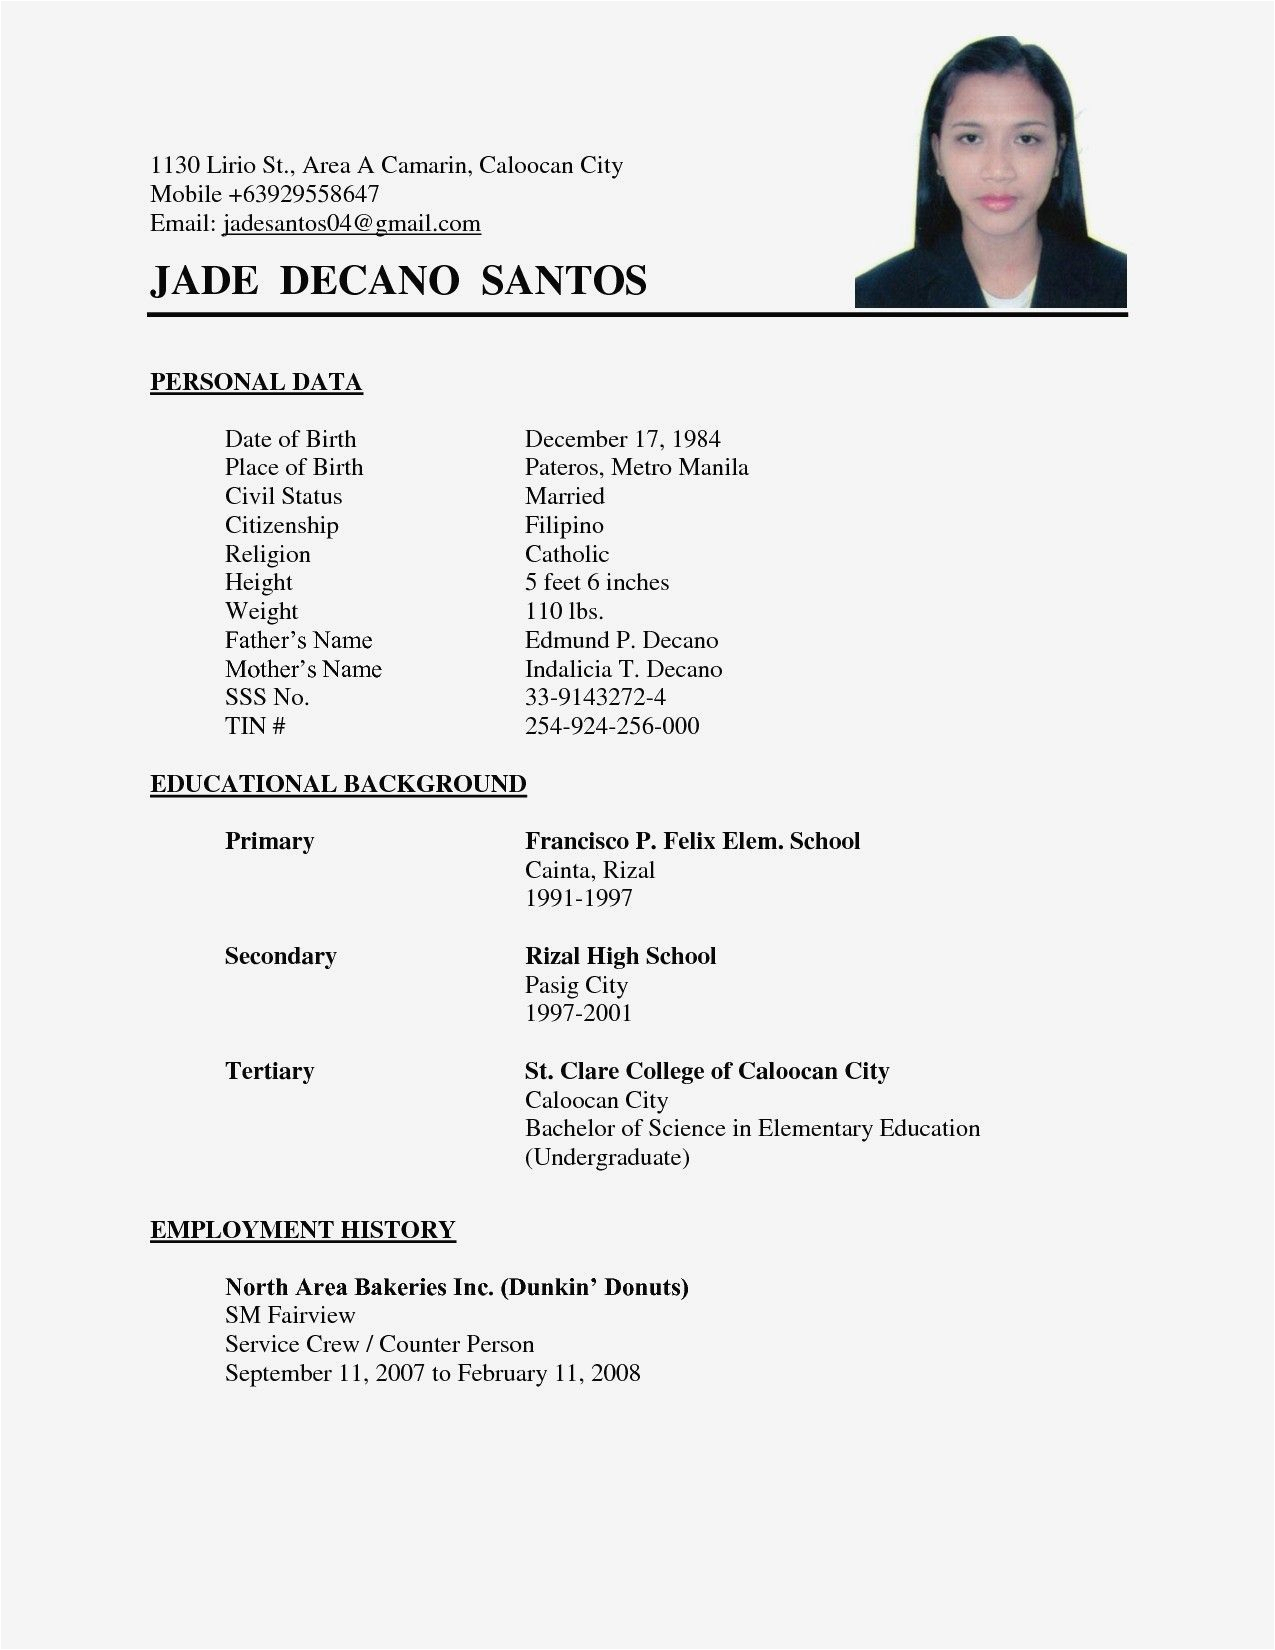 Simple Sample Of Resume for Job Application Job Application Simple Resume format Best Resume Examples